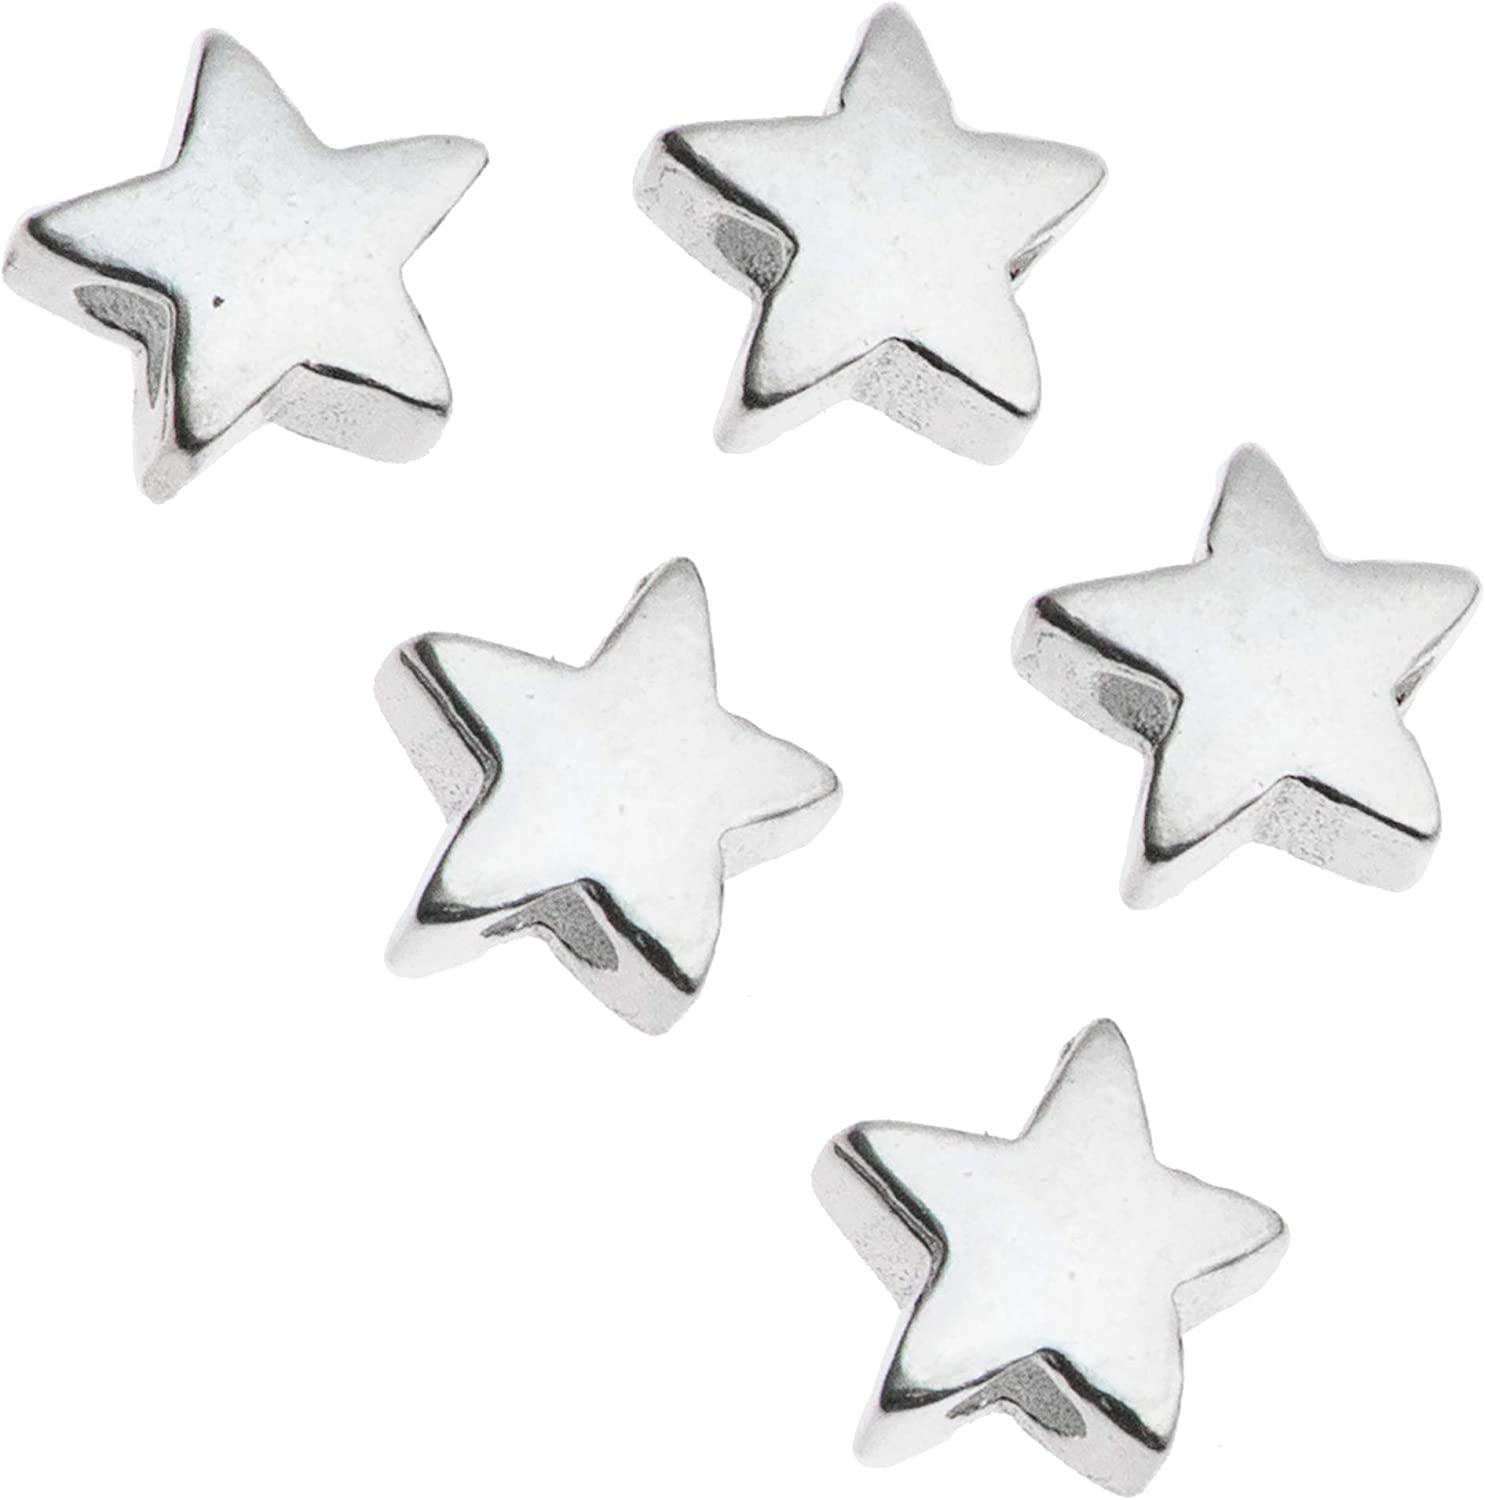 2 TINY SMALL STERLING SILVER STAR SPACER BEADS 5 MM